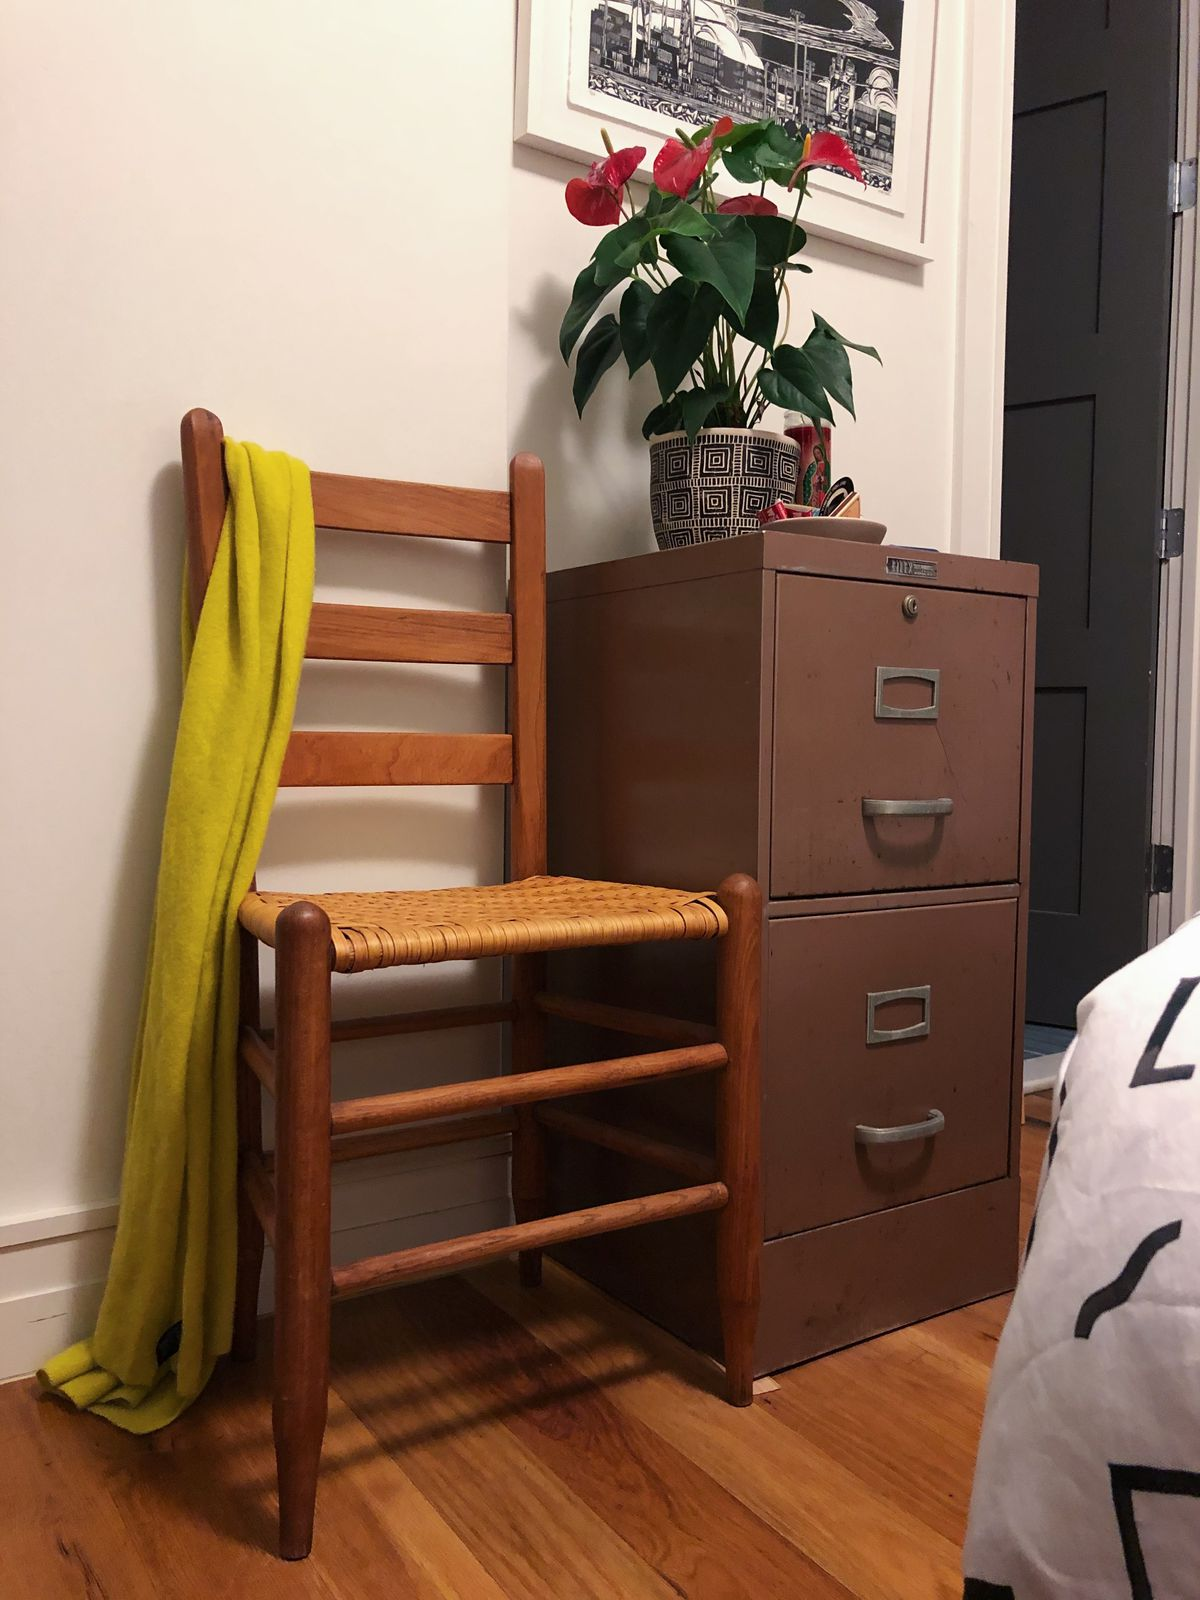 A chair with a scarf on it sits next to filing cabinet.